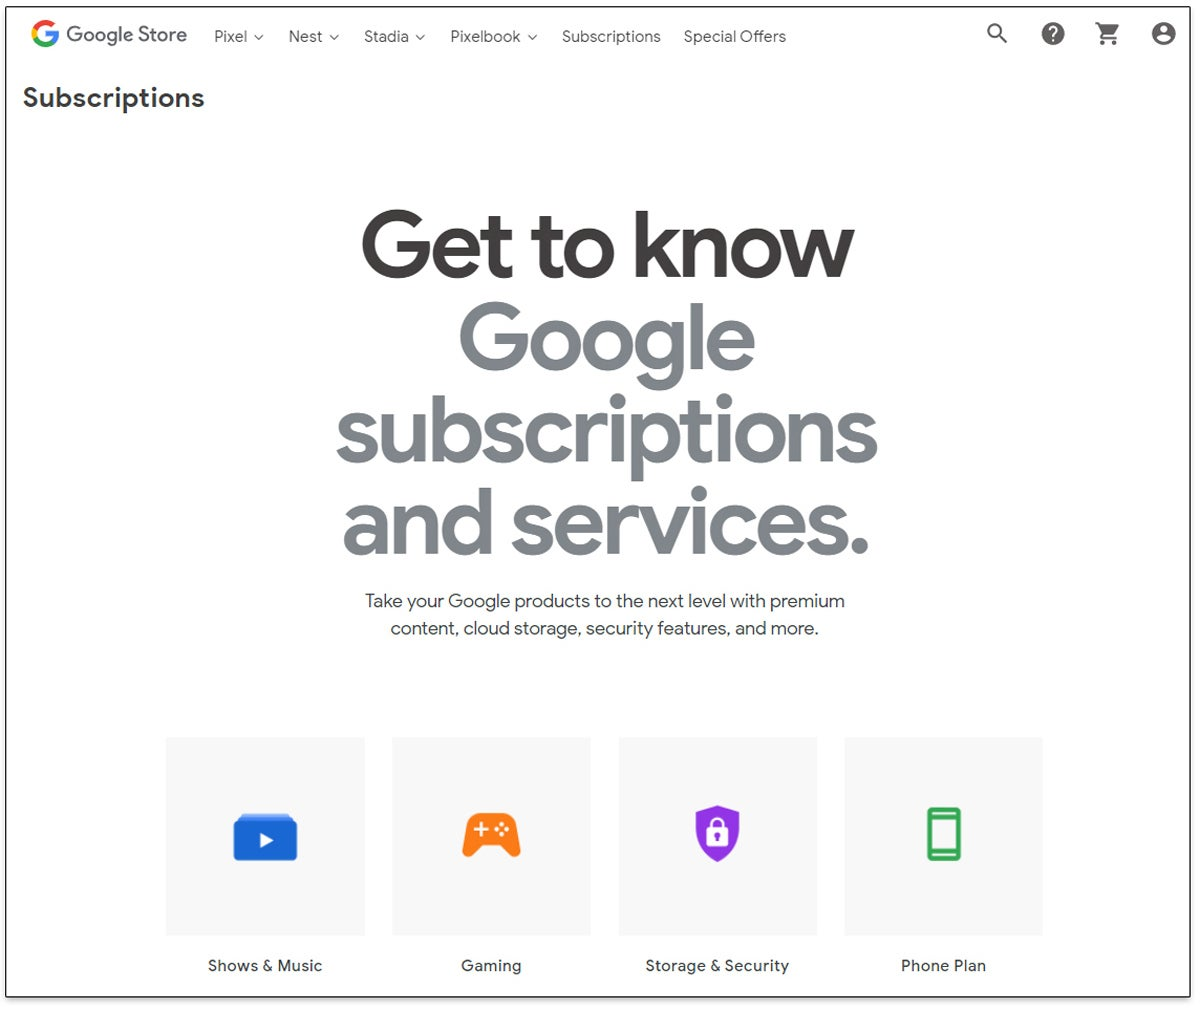 Google Store Subscriptions